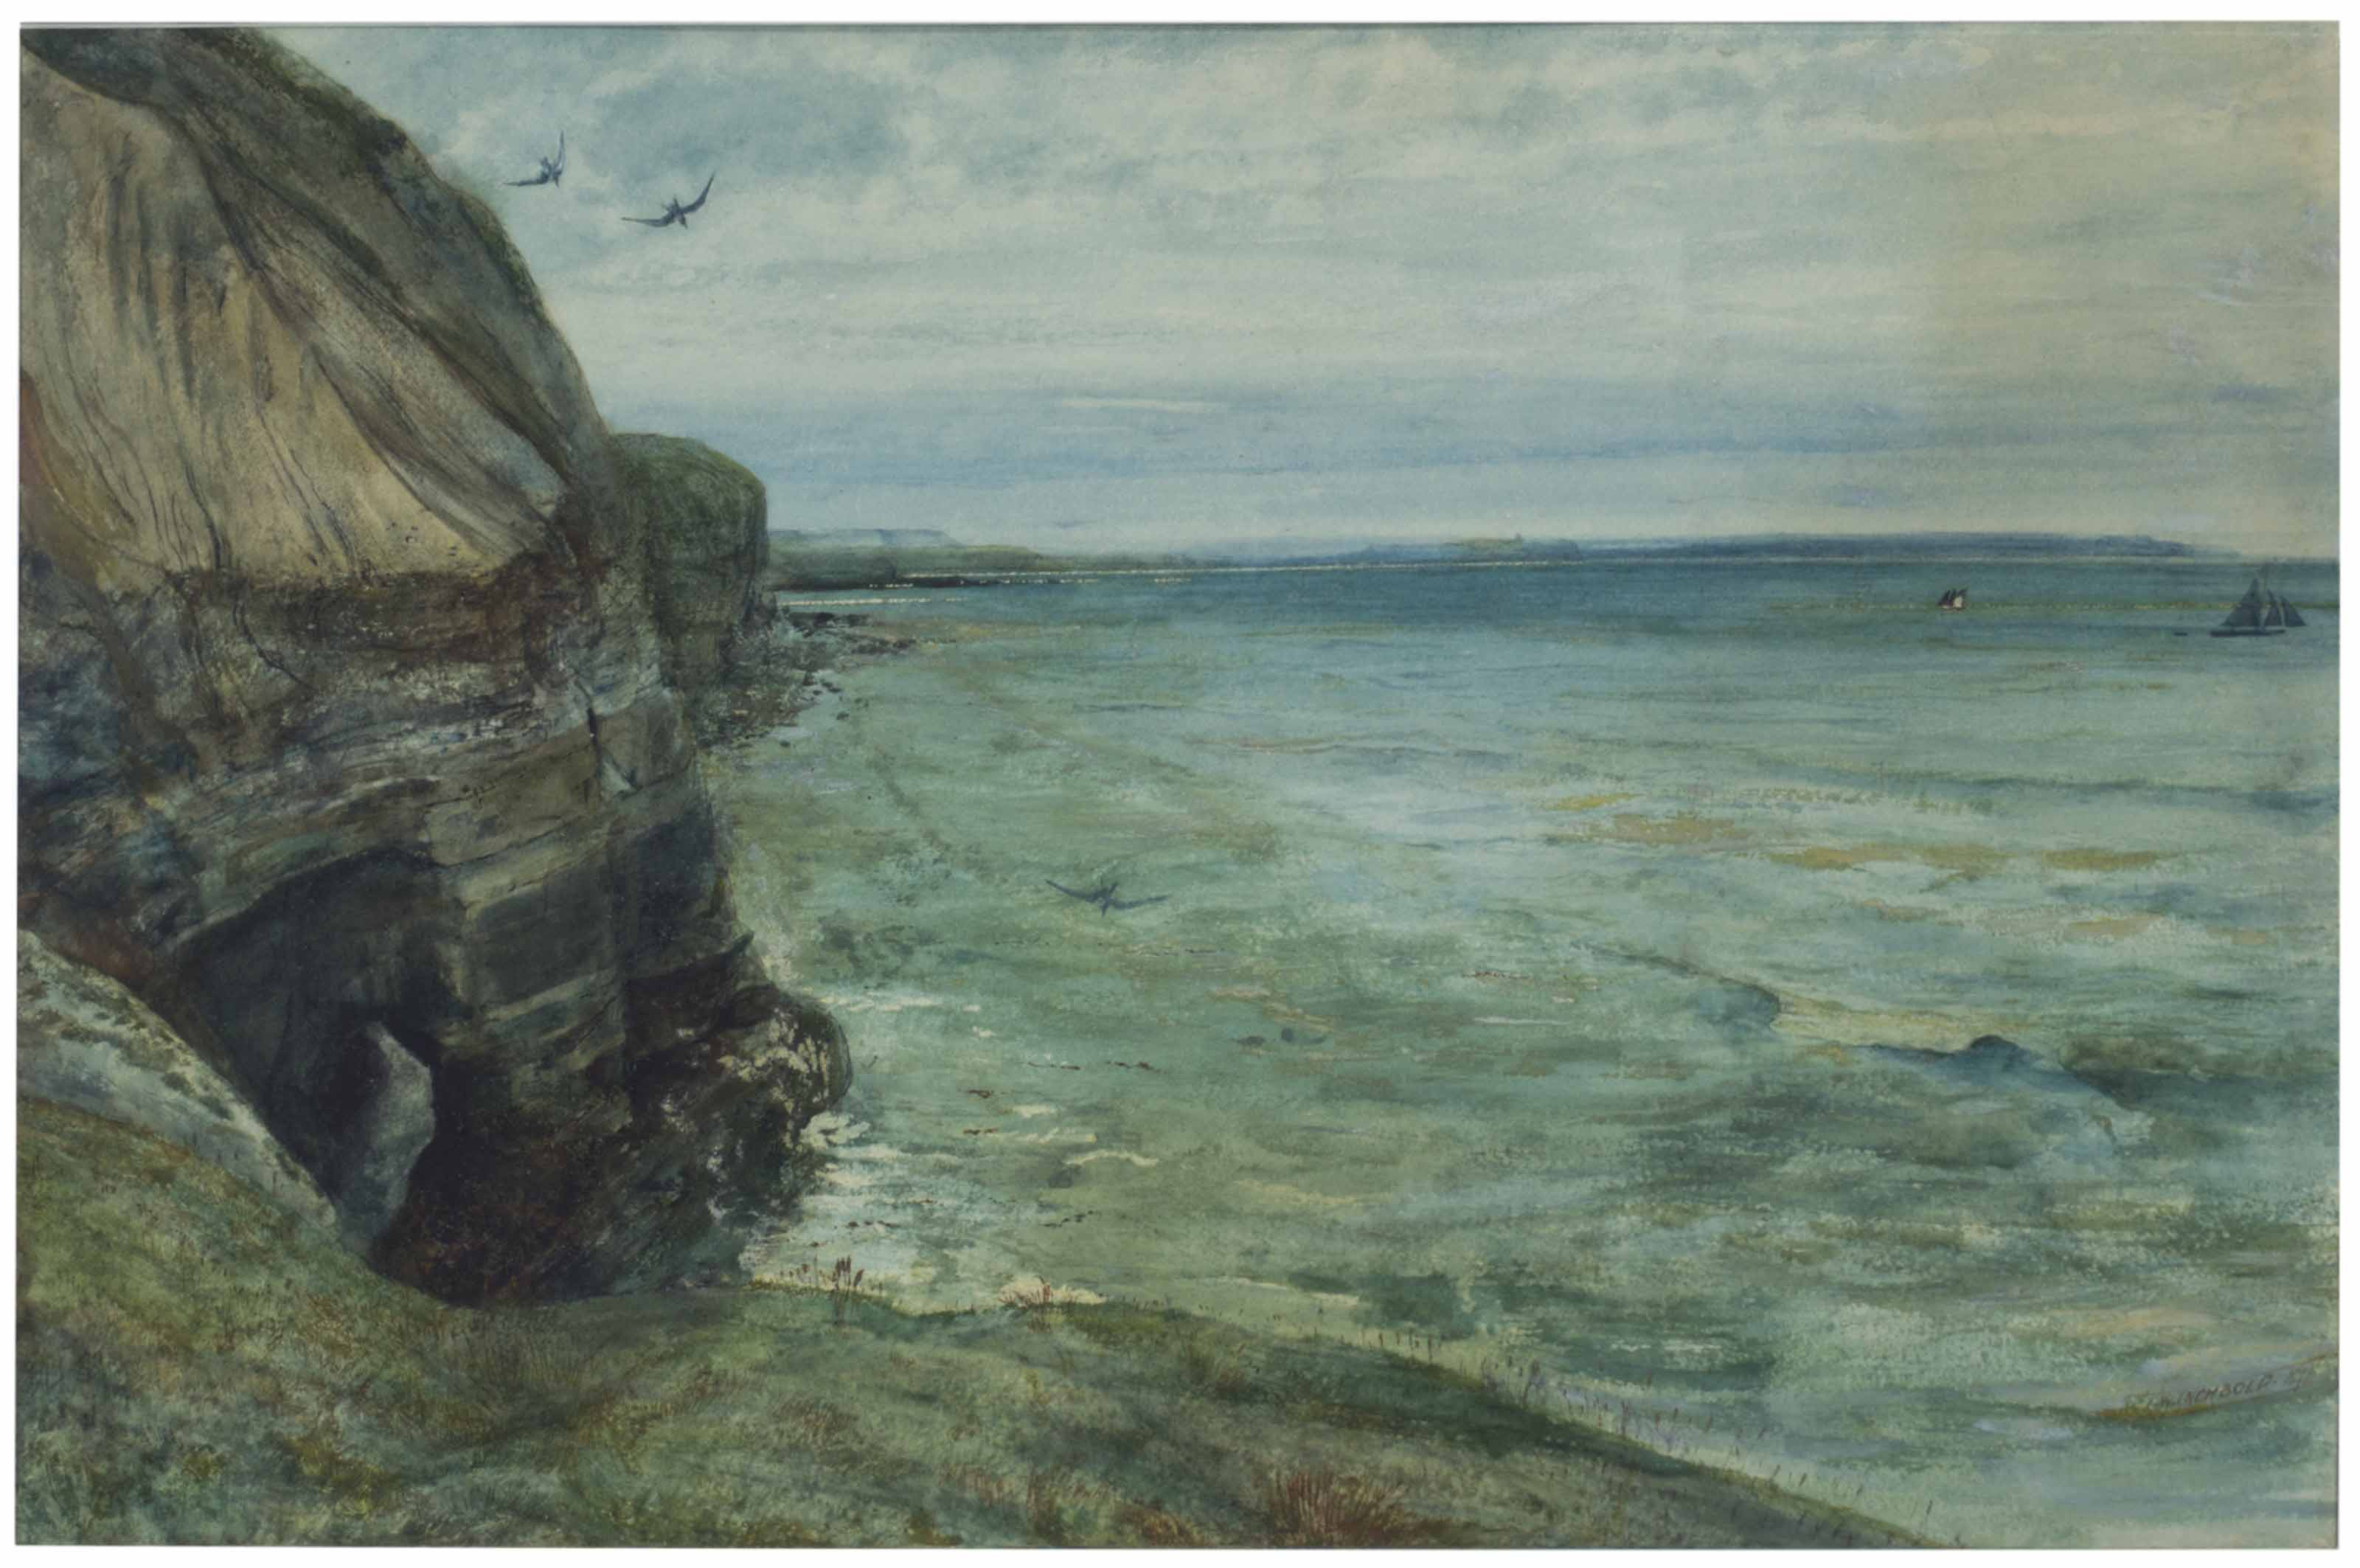 Cliffs and Sea, Filey, Yorkshire